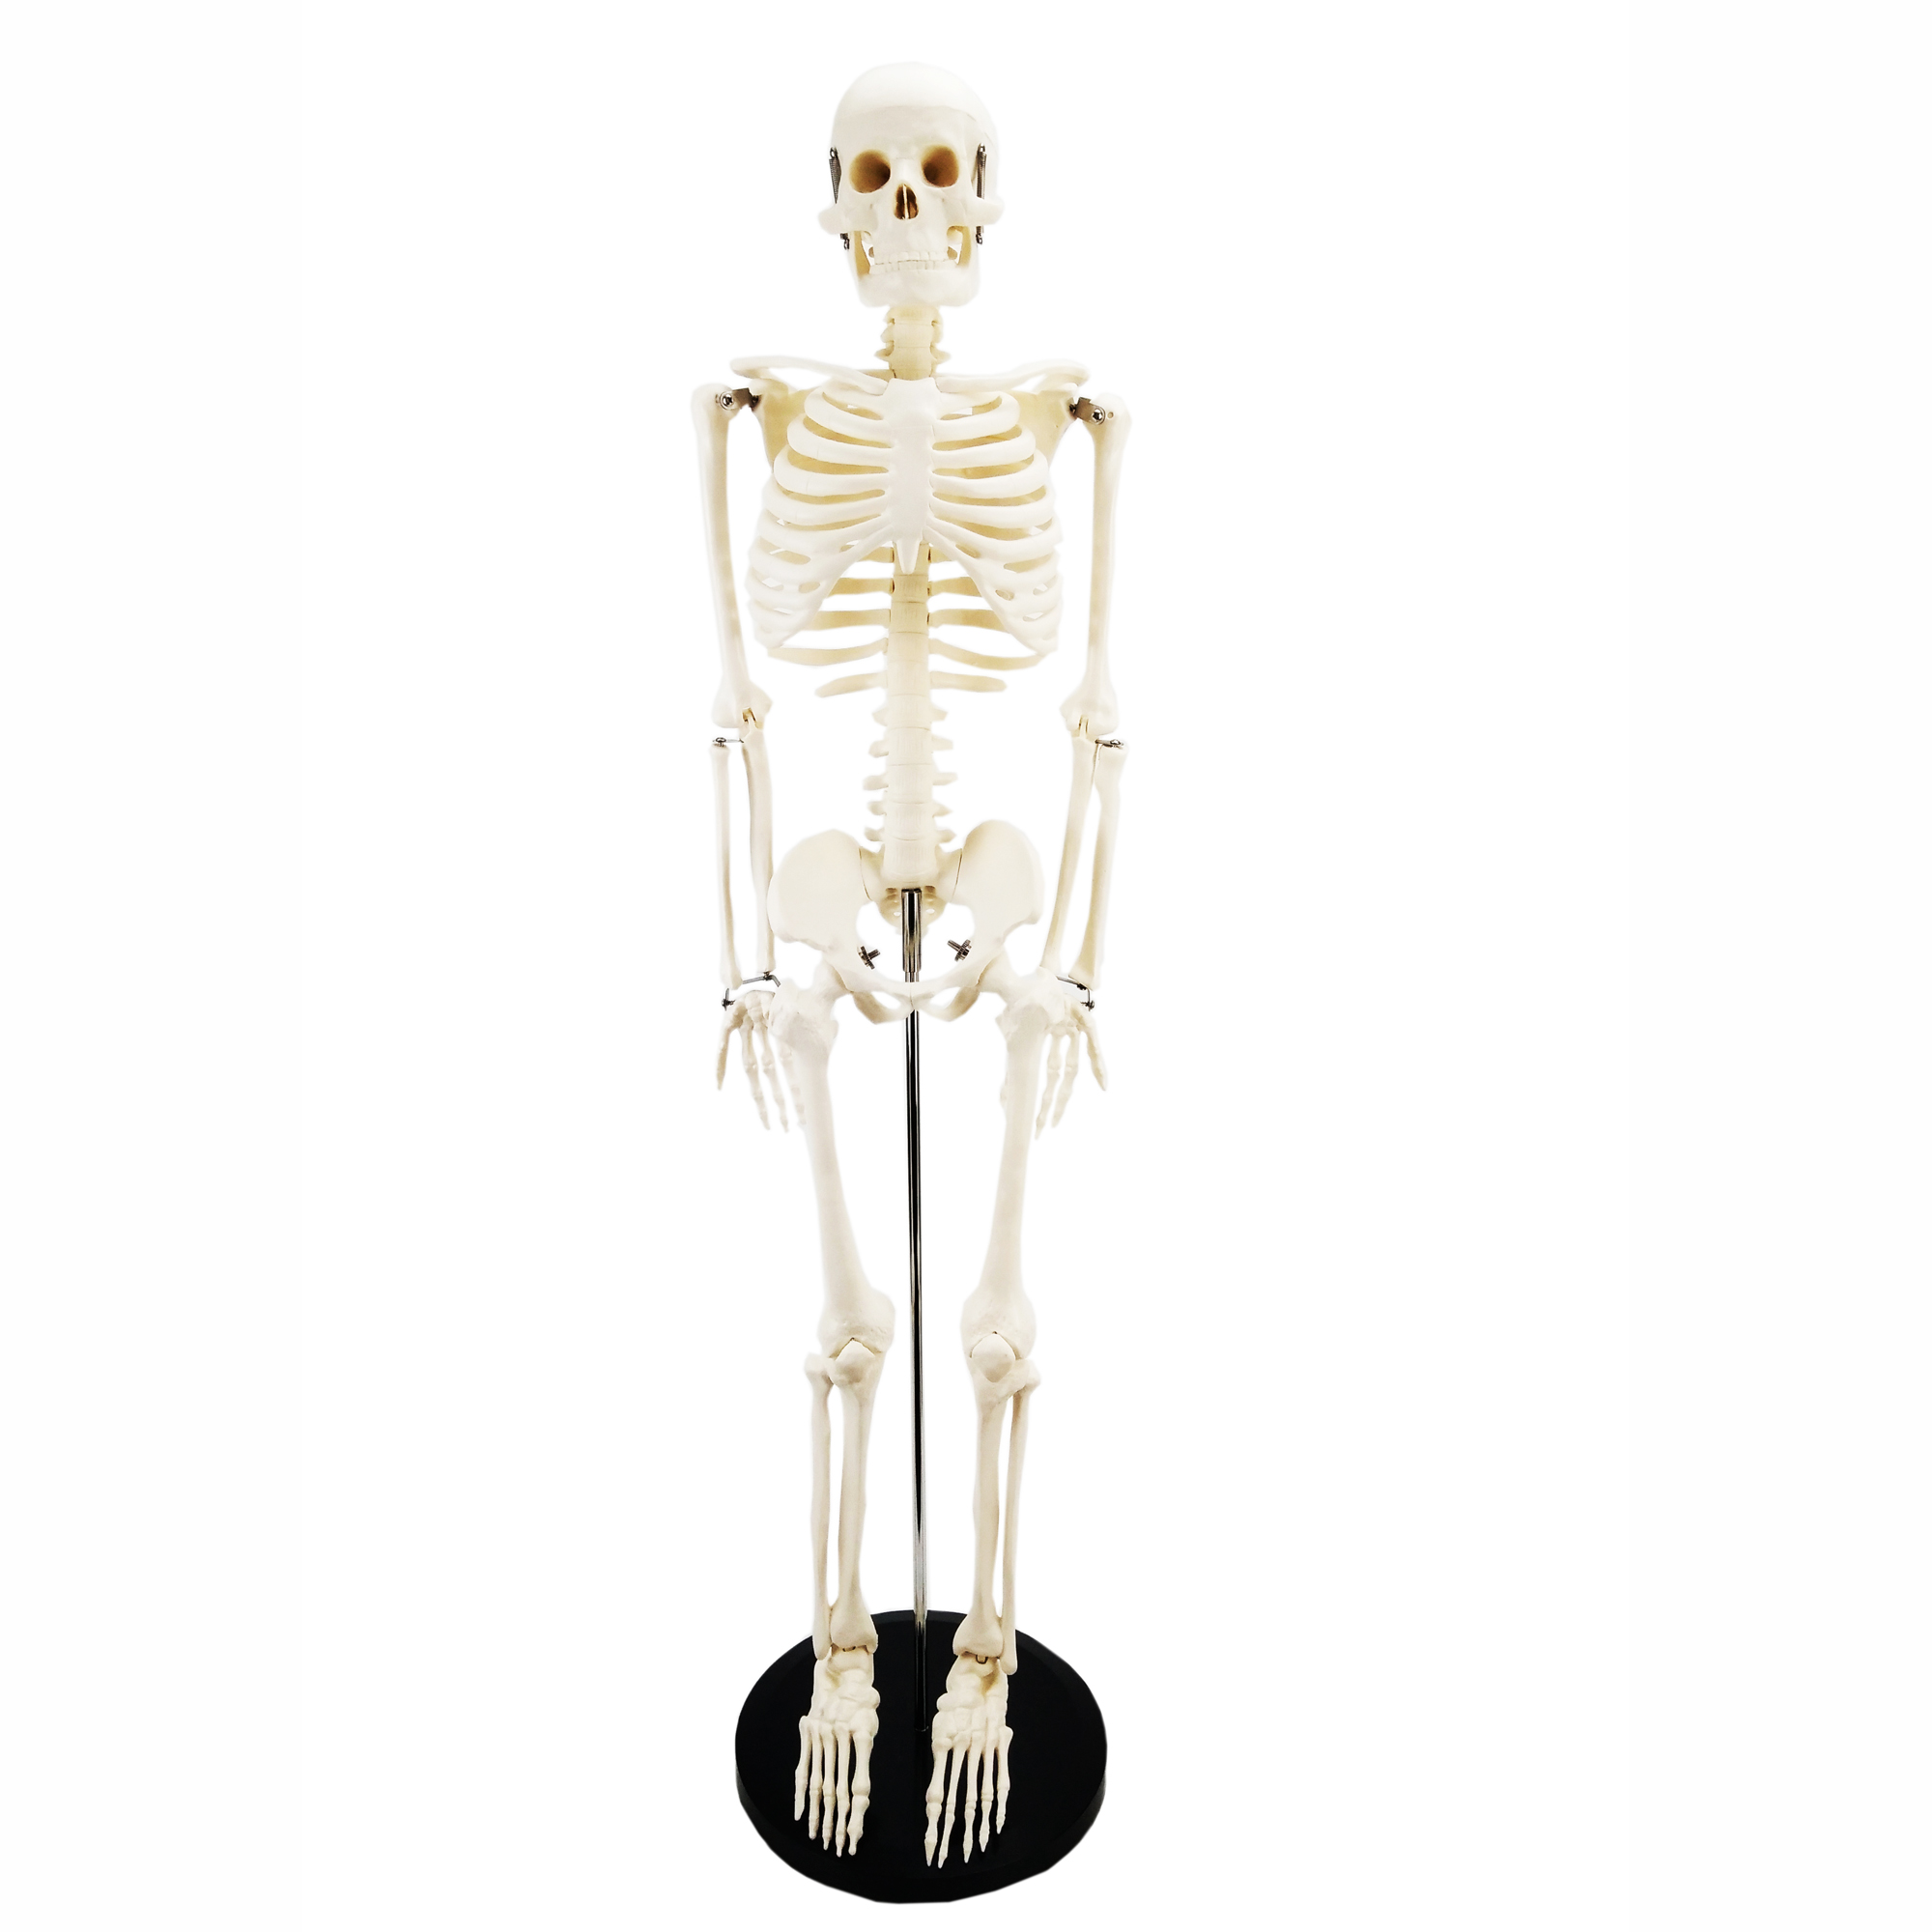 Gelsonlab HSBM-047B 85 Human Skeleton <strong>Model</strong> with Bracket PVC Material Movable Skeleton Biological <strong>Model</strong>